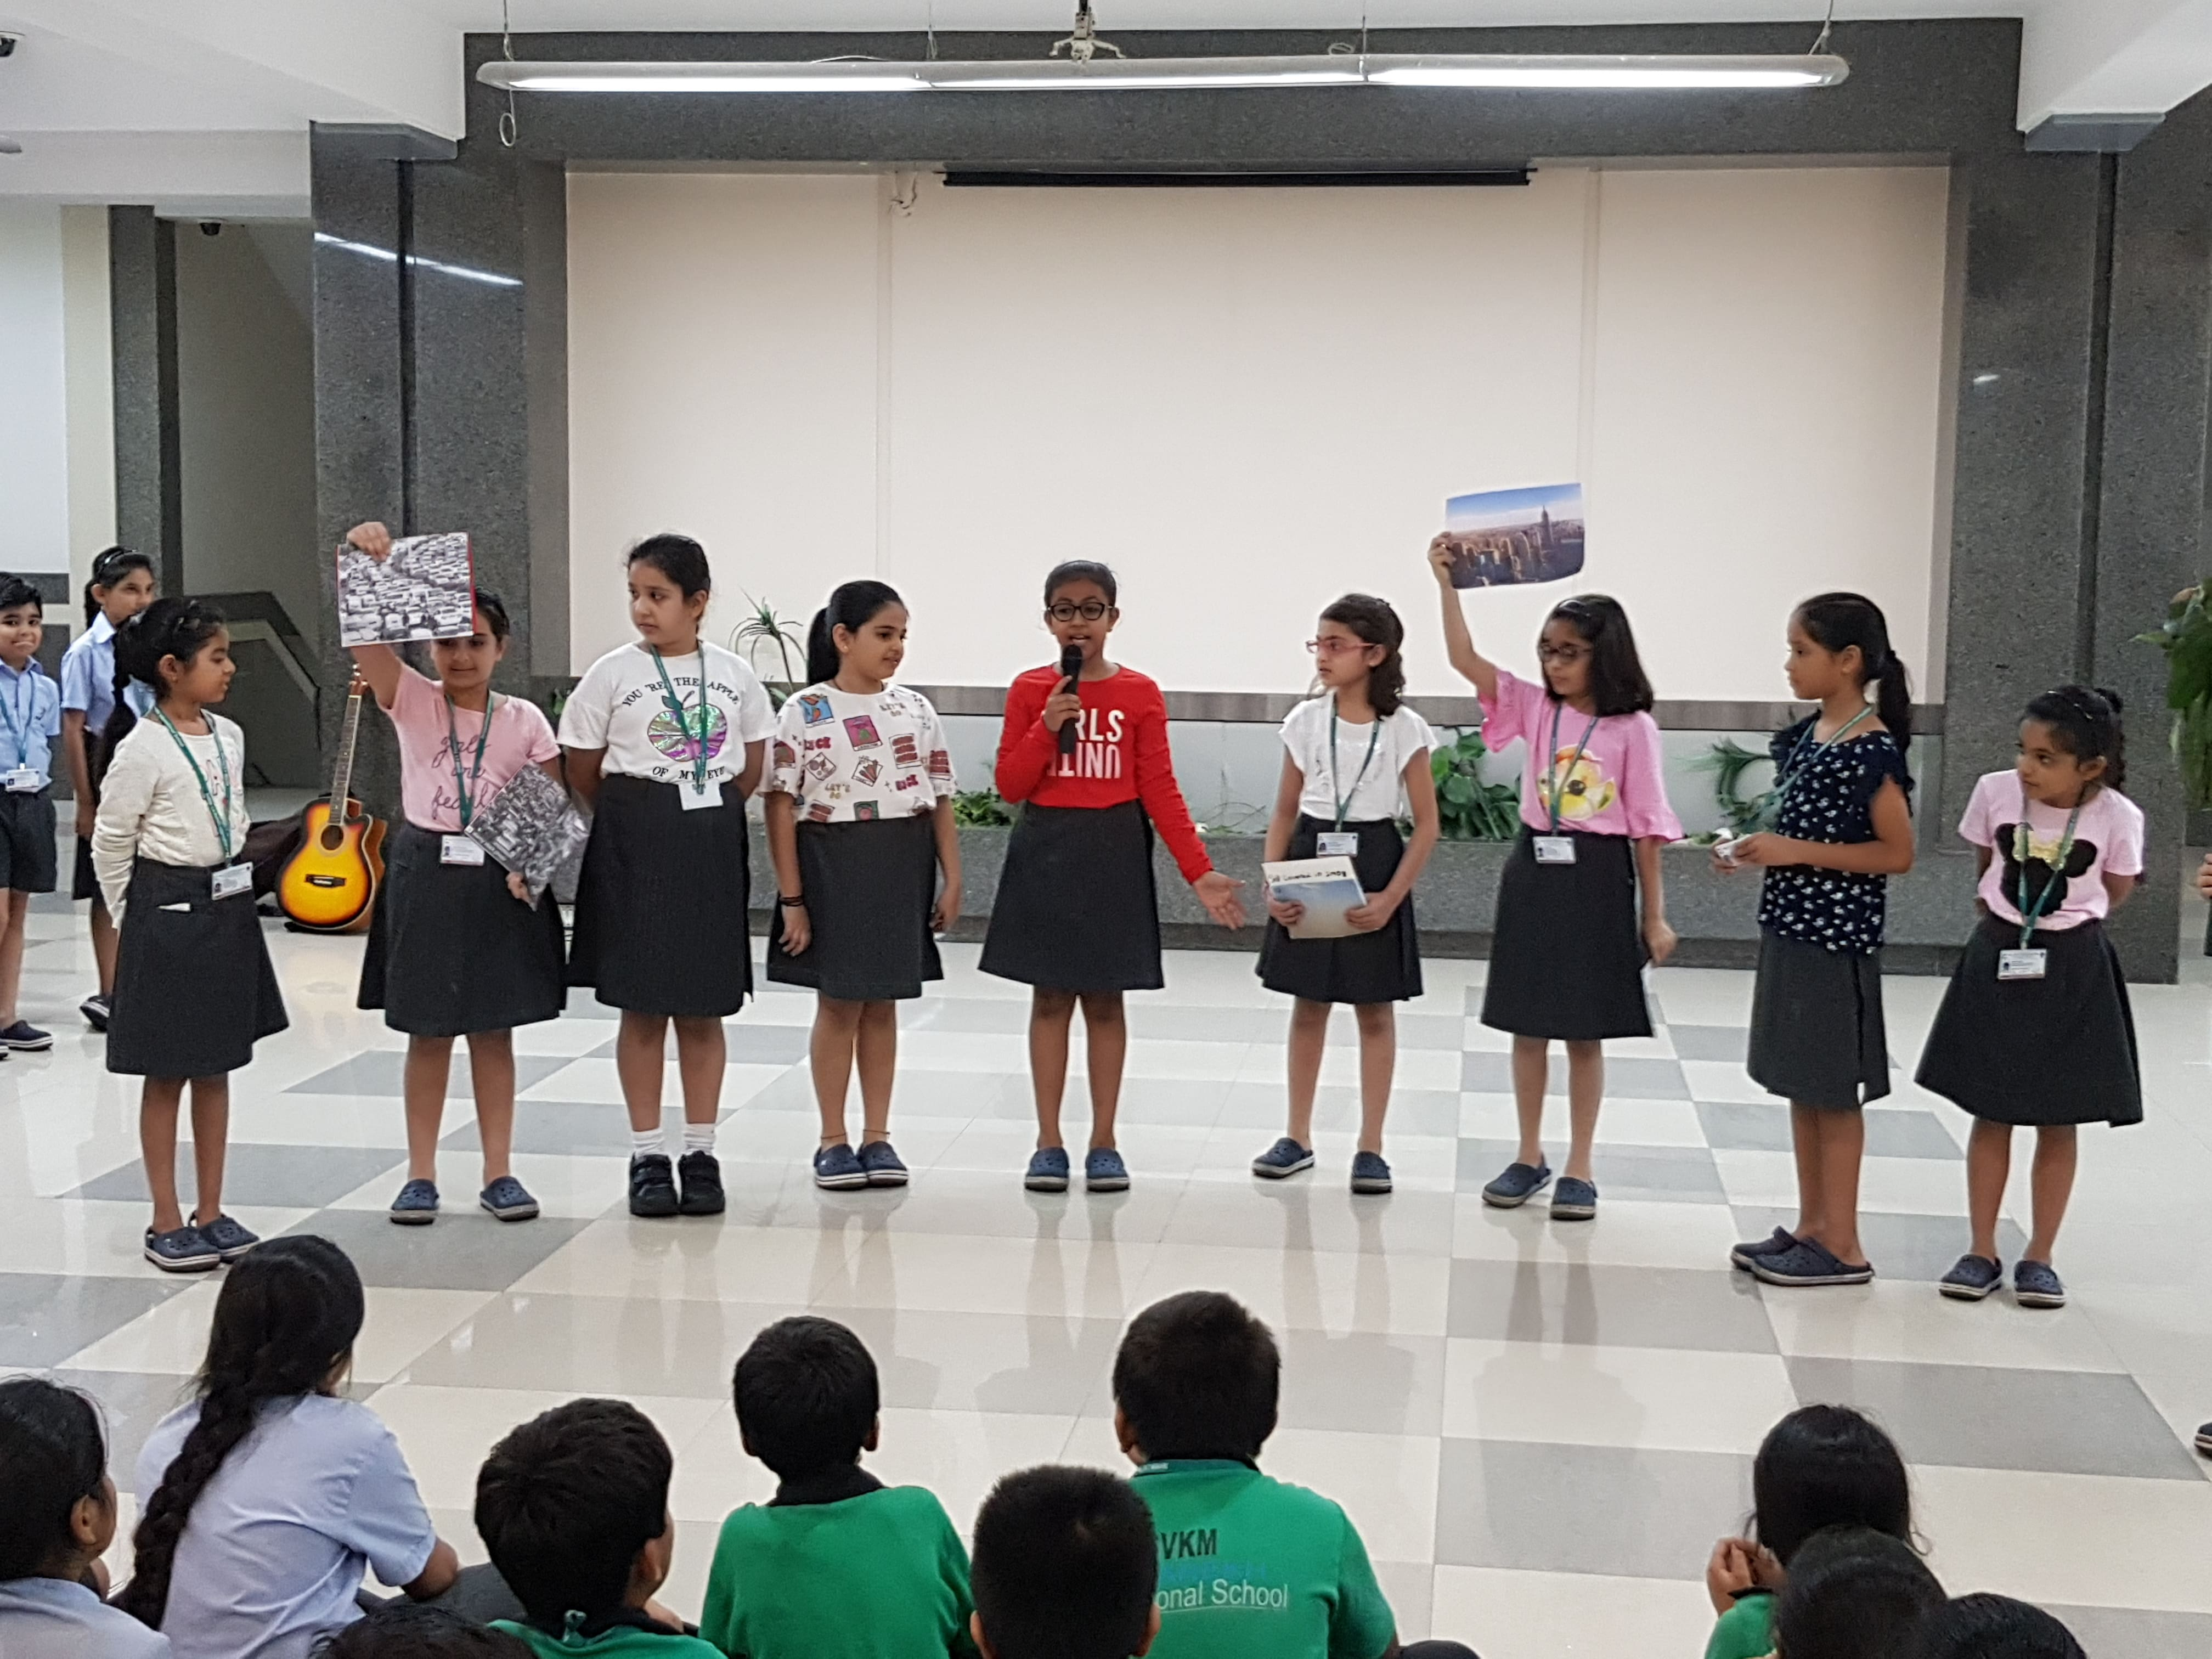 Grade 4B Assembly - Hope to save Earth